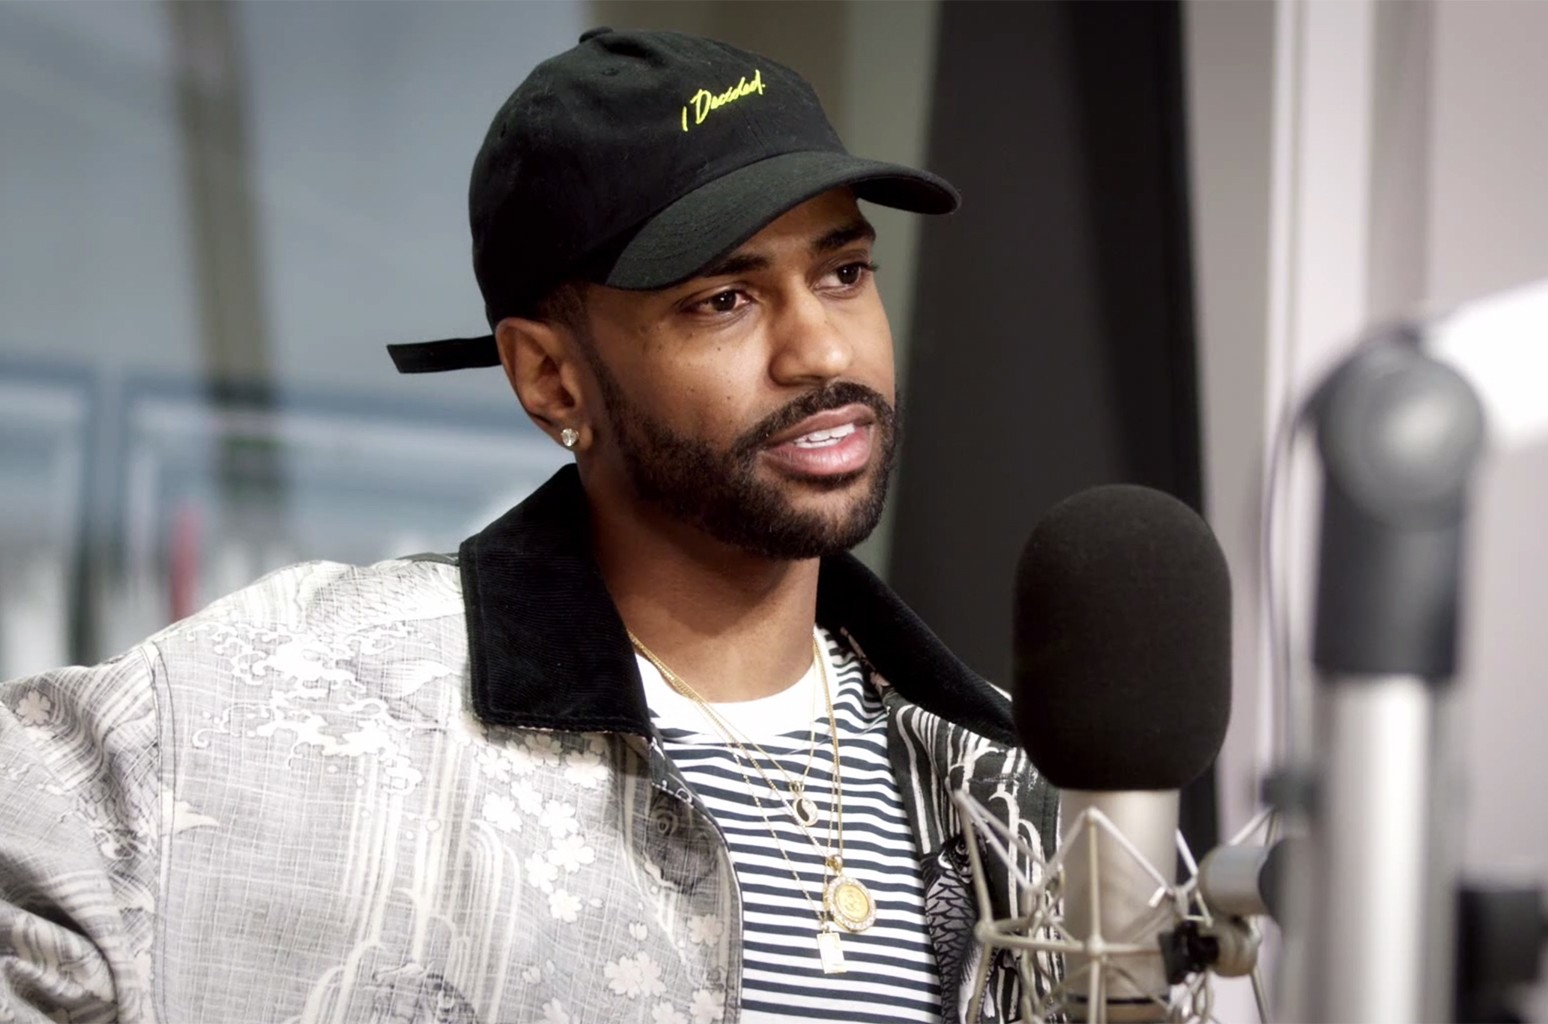 Big Sean during an interview with Zane Lowe.